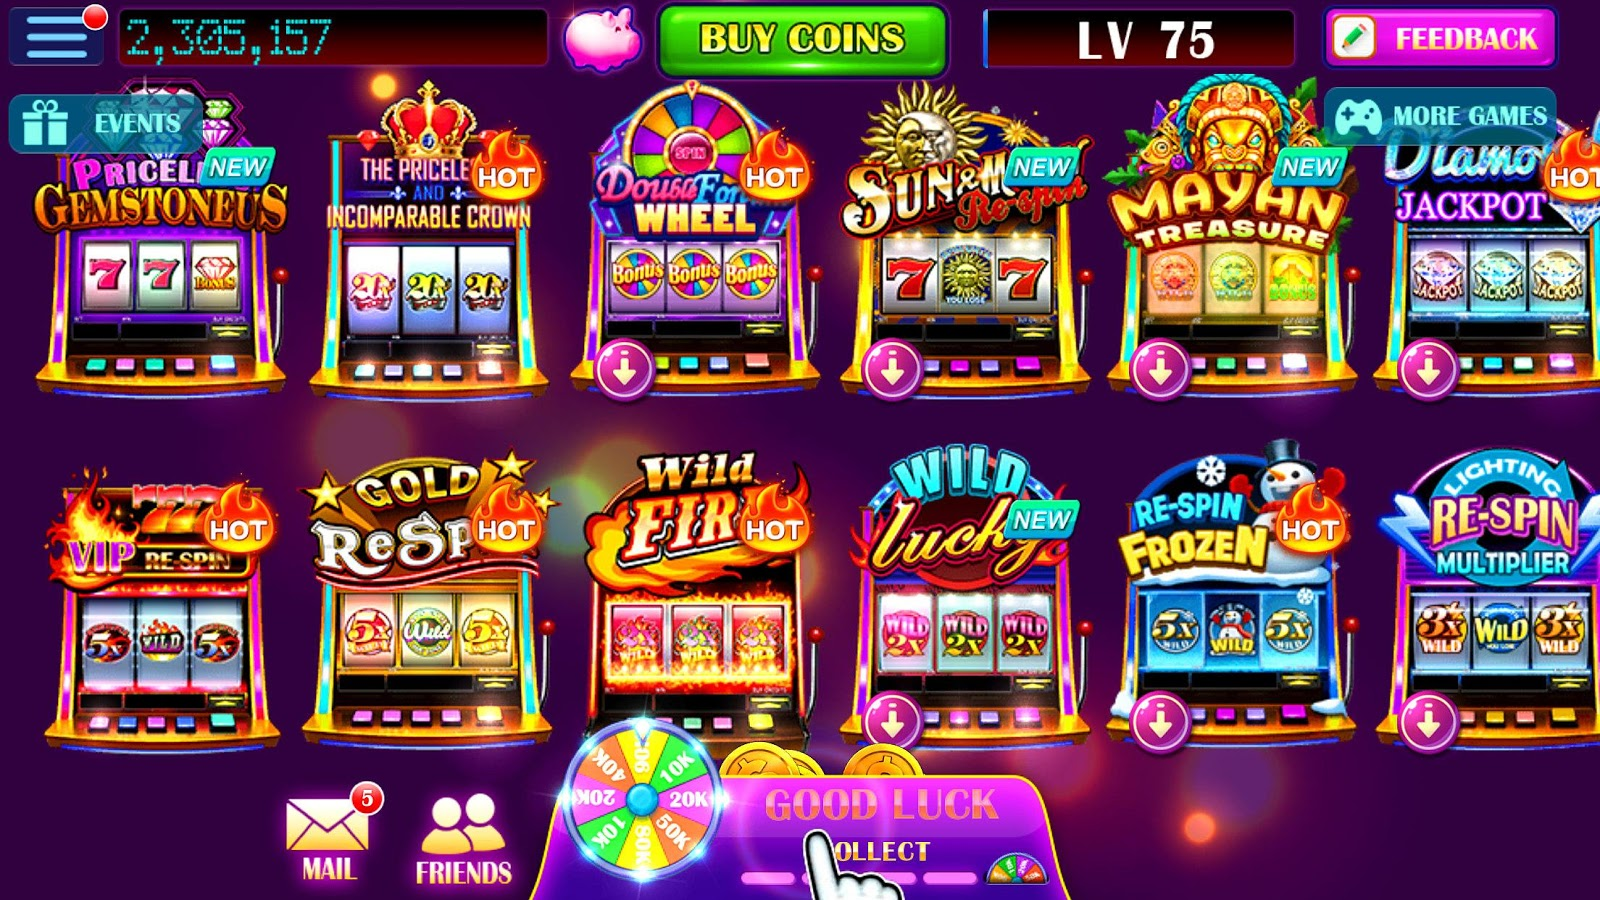 Wild Clover Slot Machine - Play for Free & Win for Real